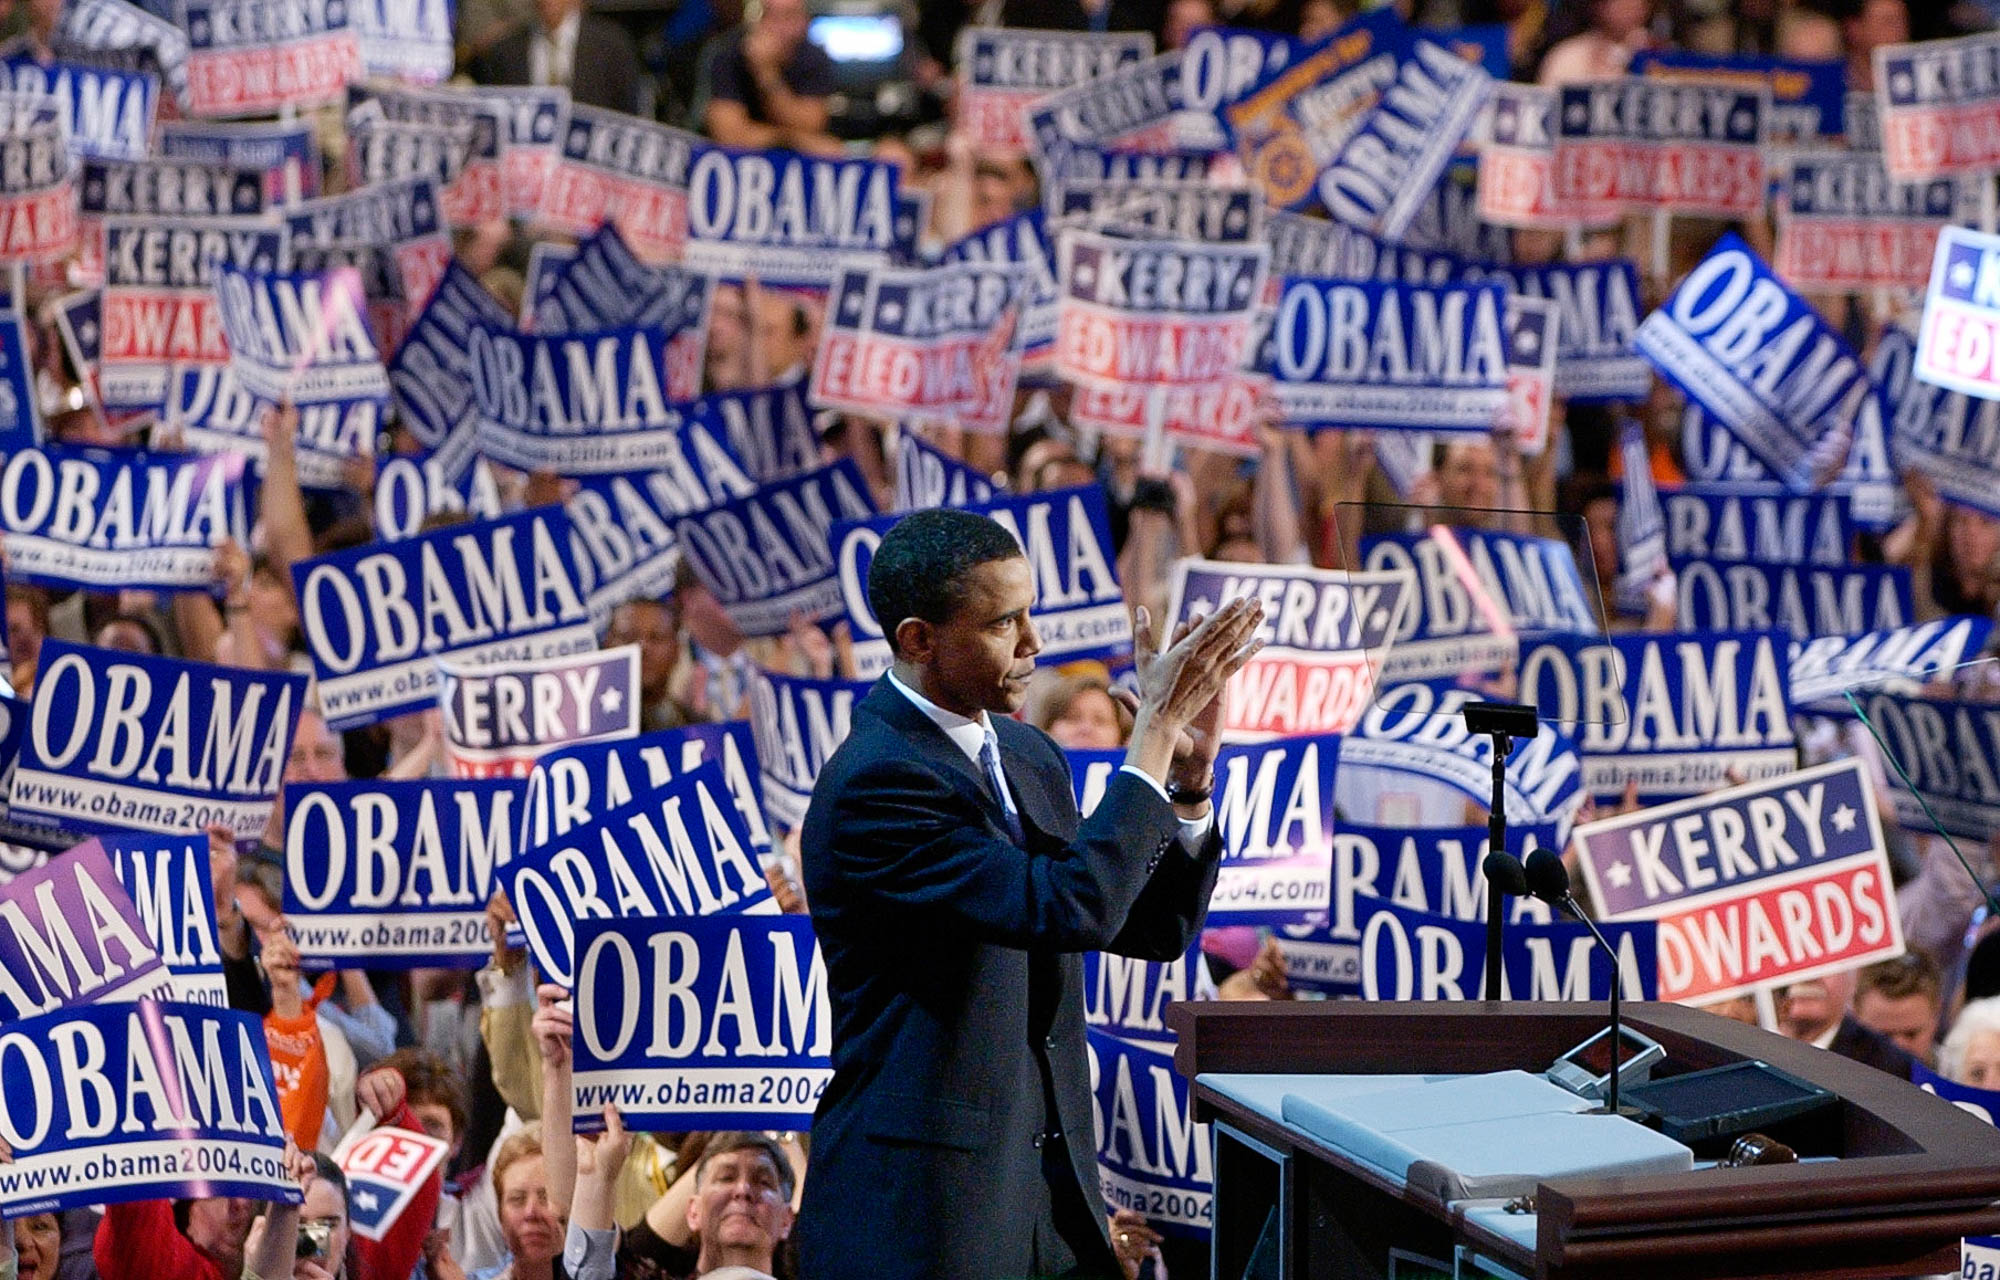 Then-Senate candidate Barack Obama speaking at 2004 Democratic National Convention; crowd holding placards in background (© AP Images)